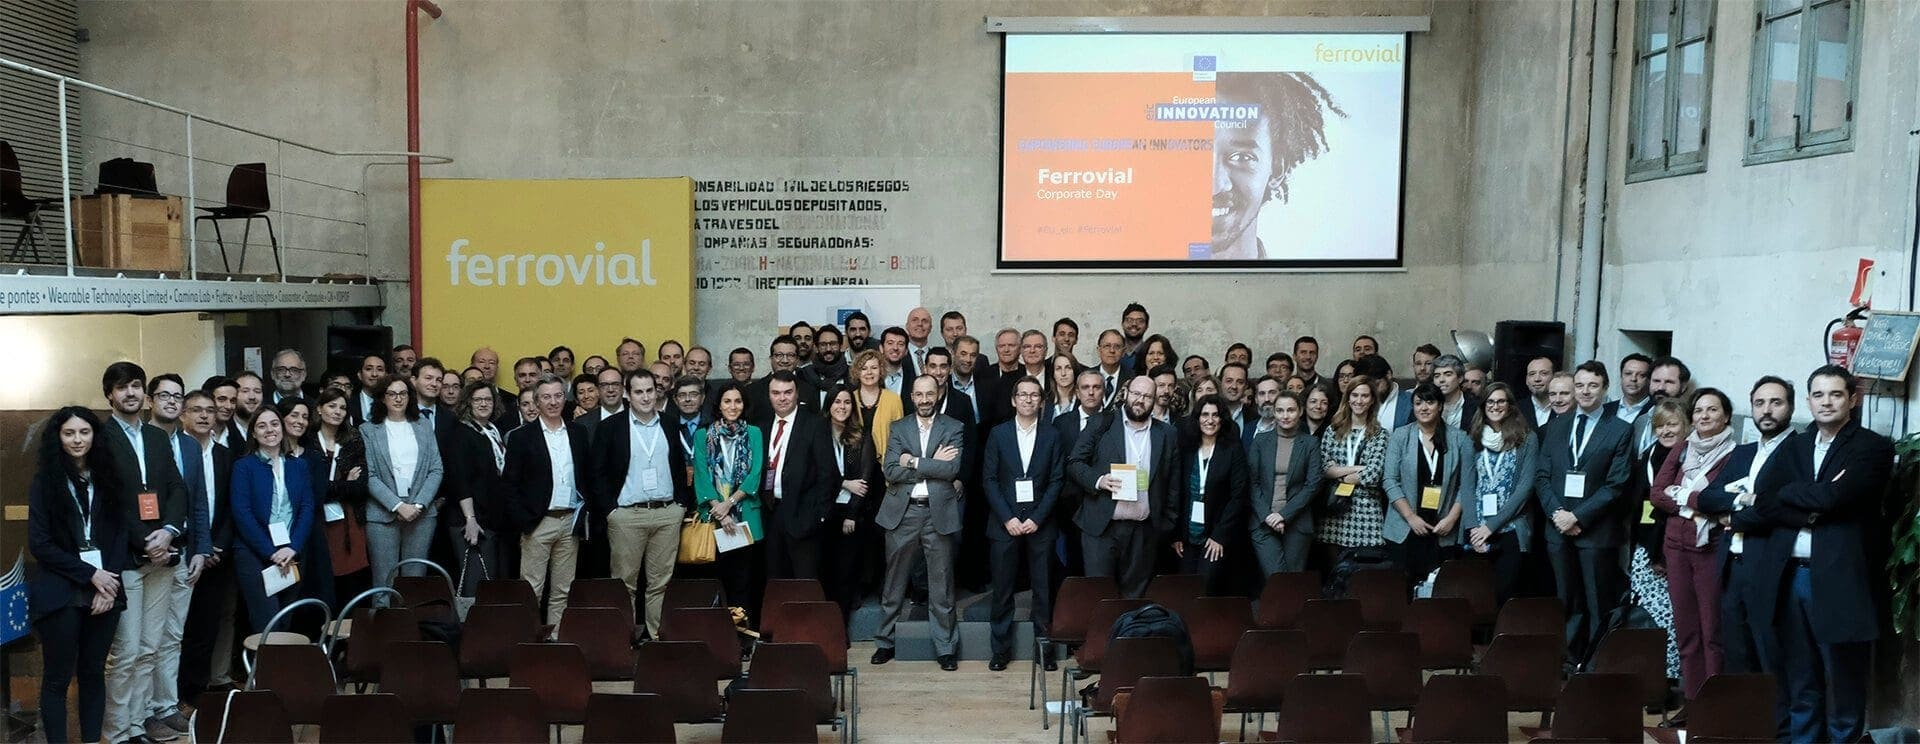 Ferrovial celebrates Corporate Day